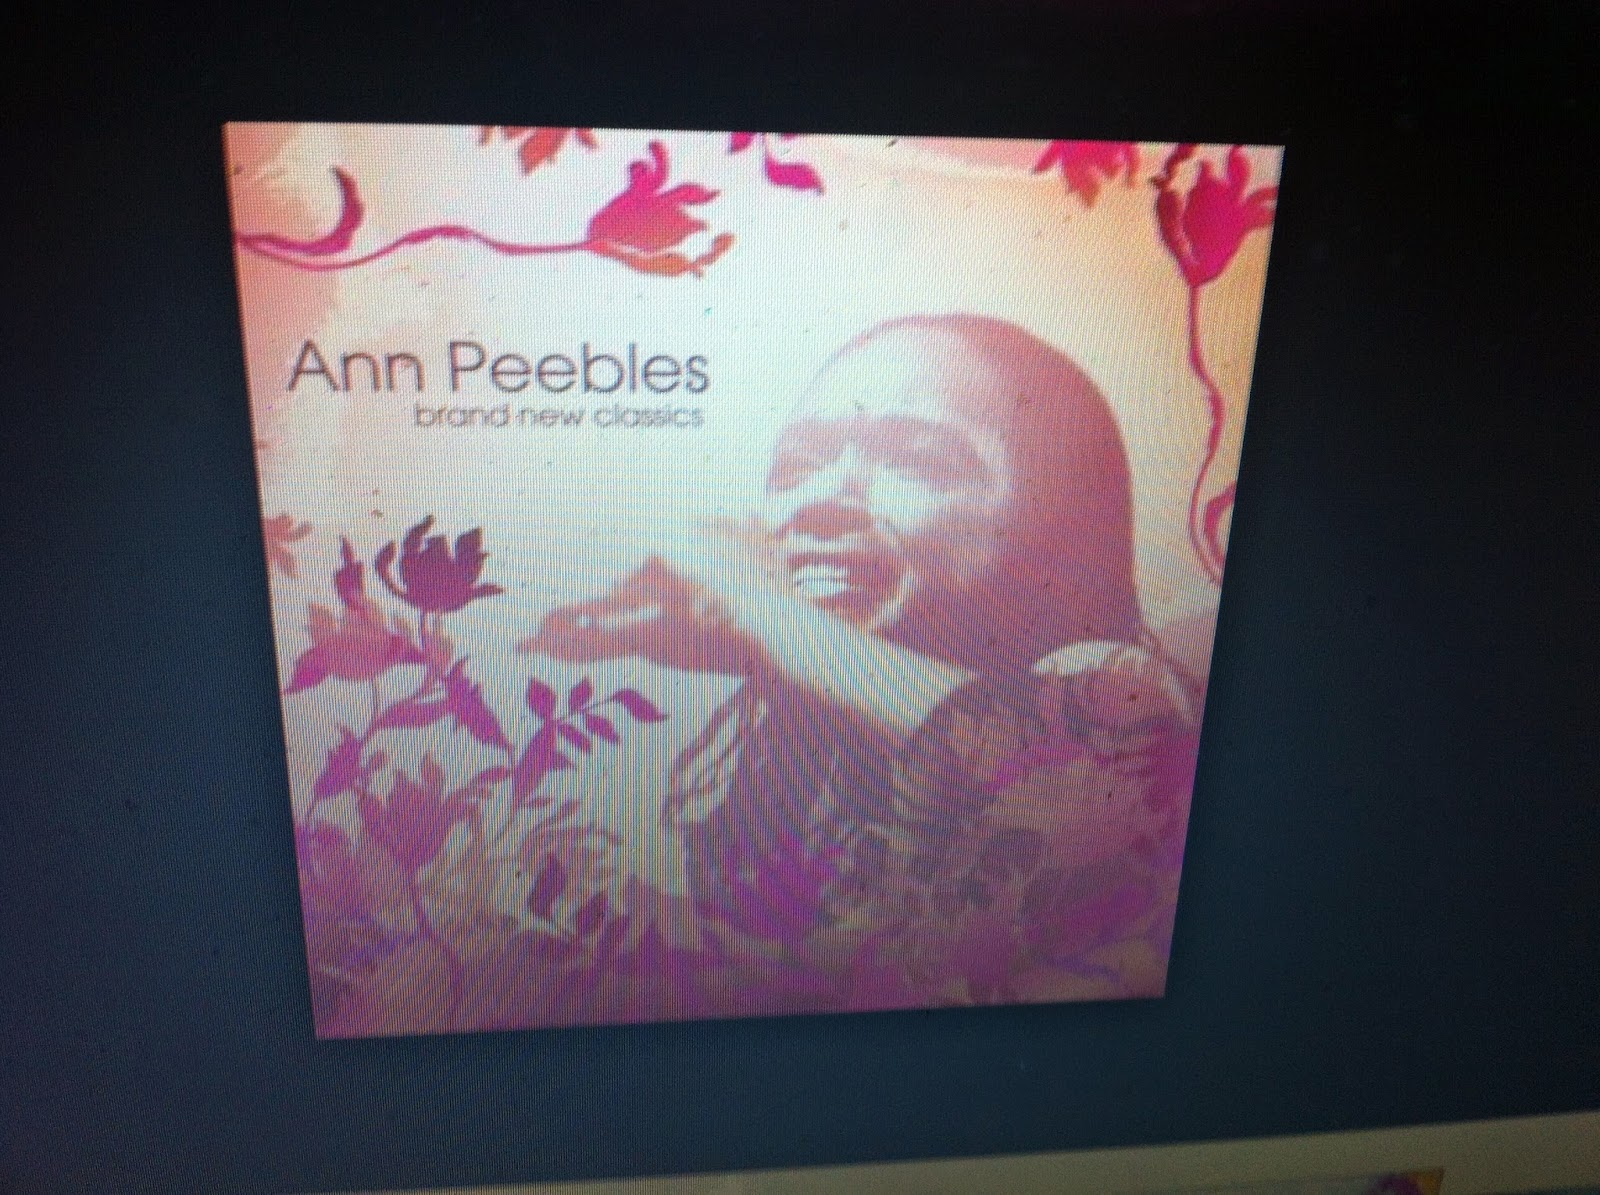 Ann Peebles - Slipped, Tripped, And Fell In Love / 99 Lbs.